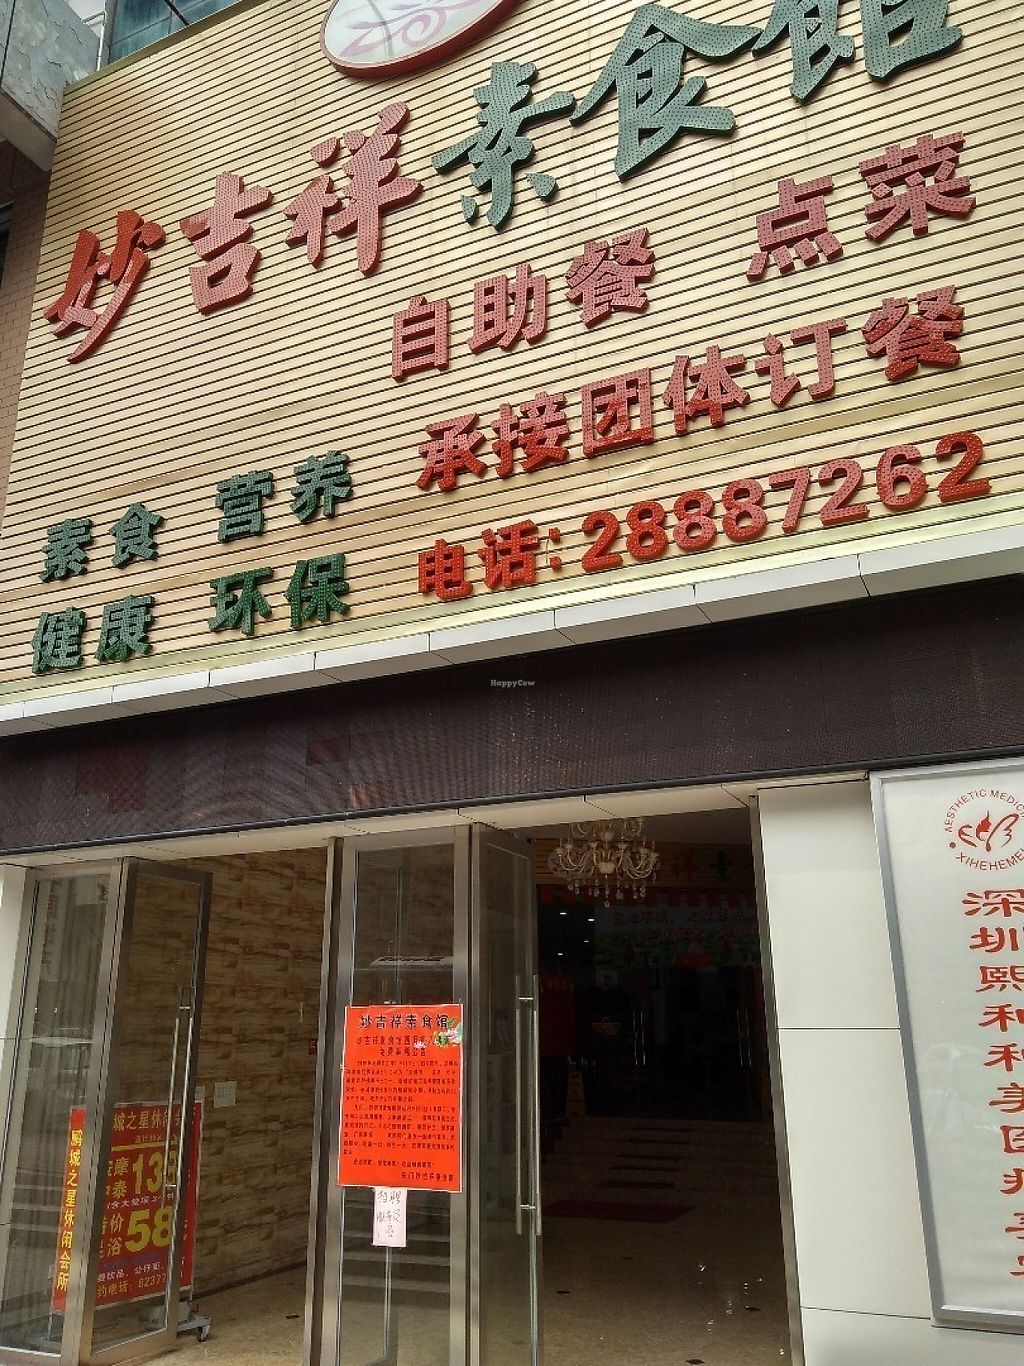 """Photo of Miao Ji Xiang Vegetarian  by <a href=""""/members/profile/JackTanner"""">JackTanner</a> <br/>Inside this building  <br/> May 2, 2017  - <a href='/contact/abuse/image/91460/254892'>Report</a>"""